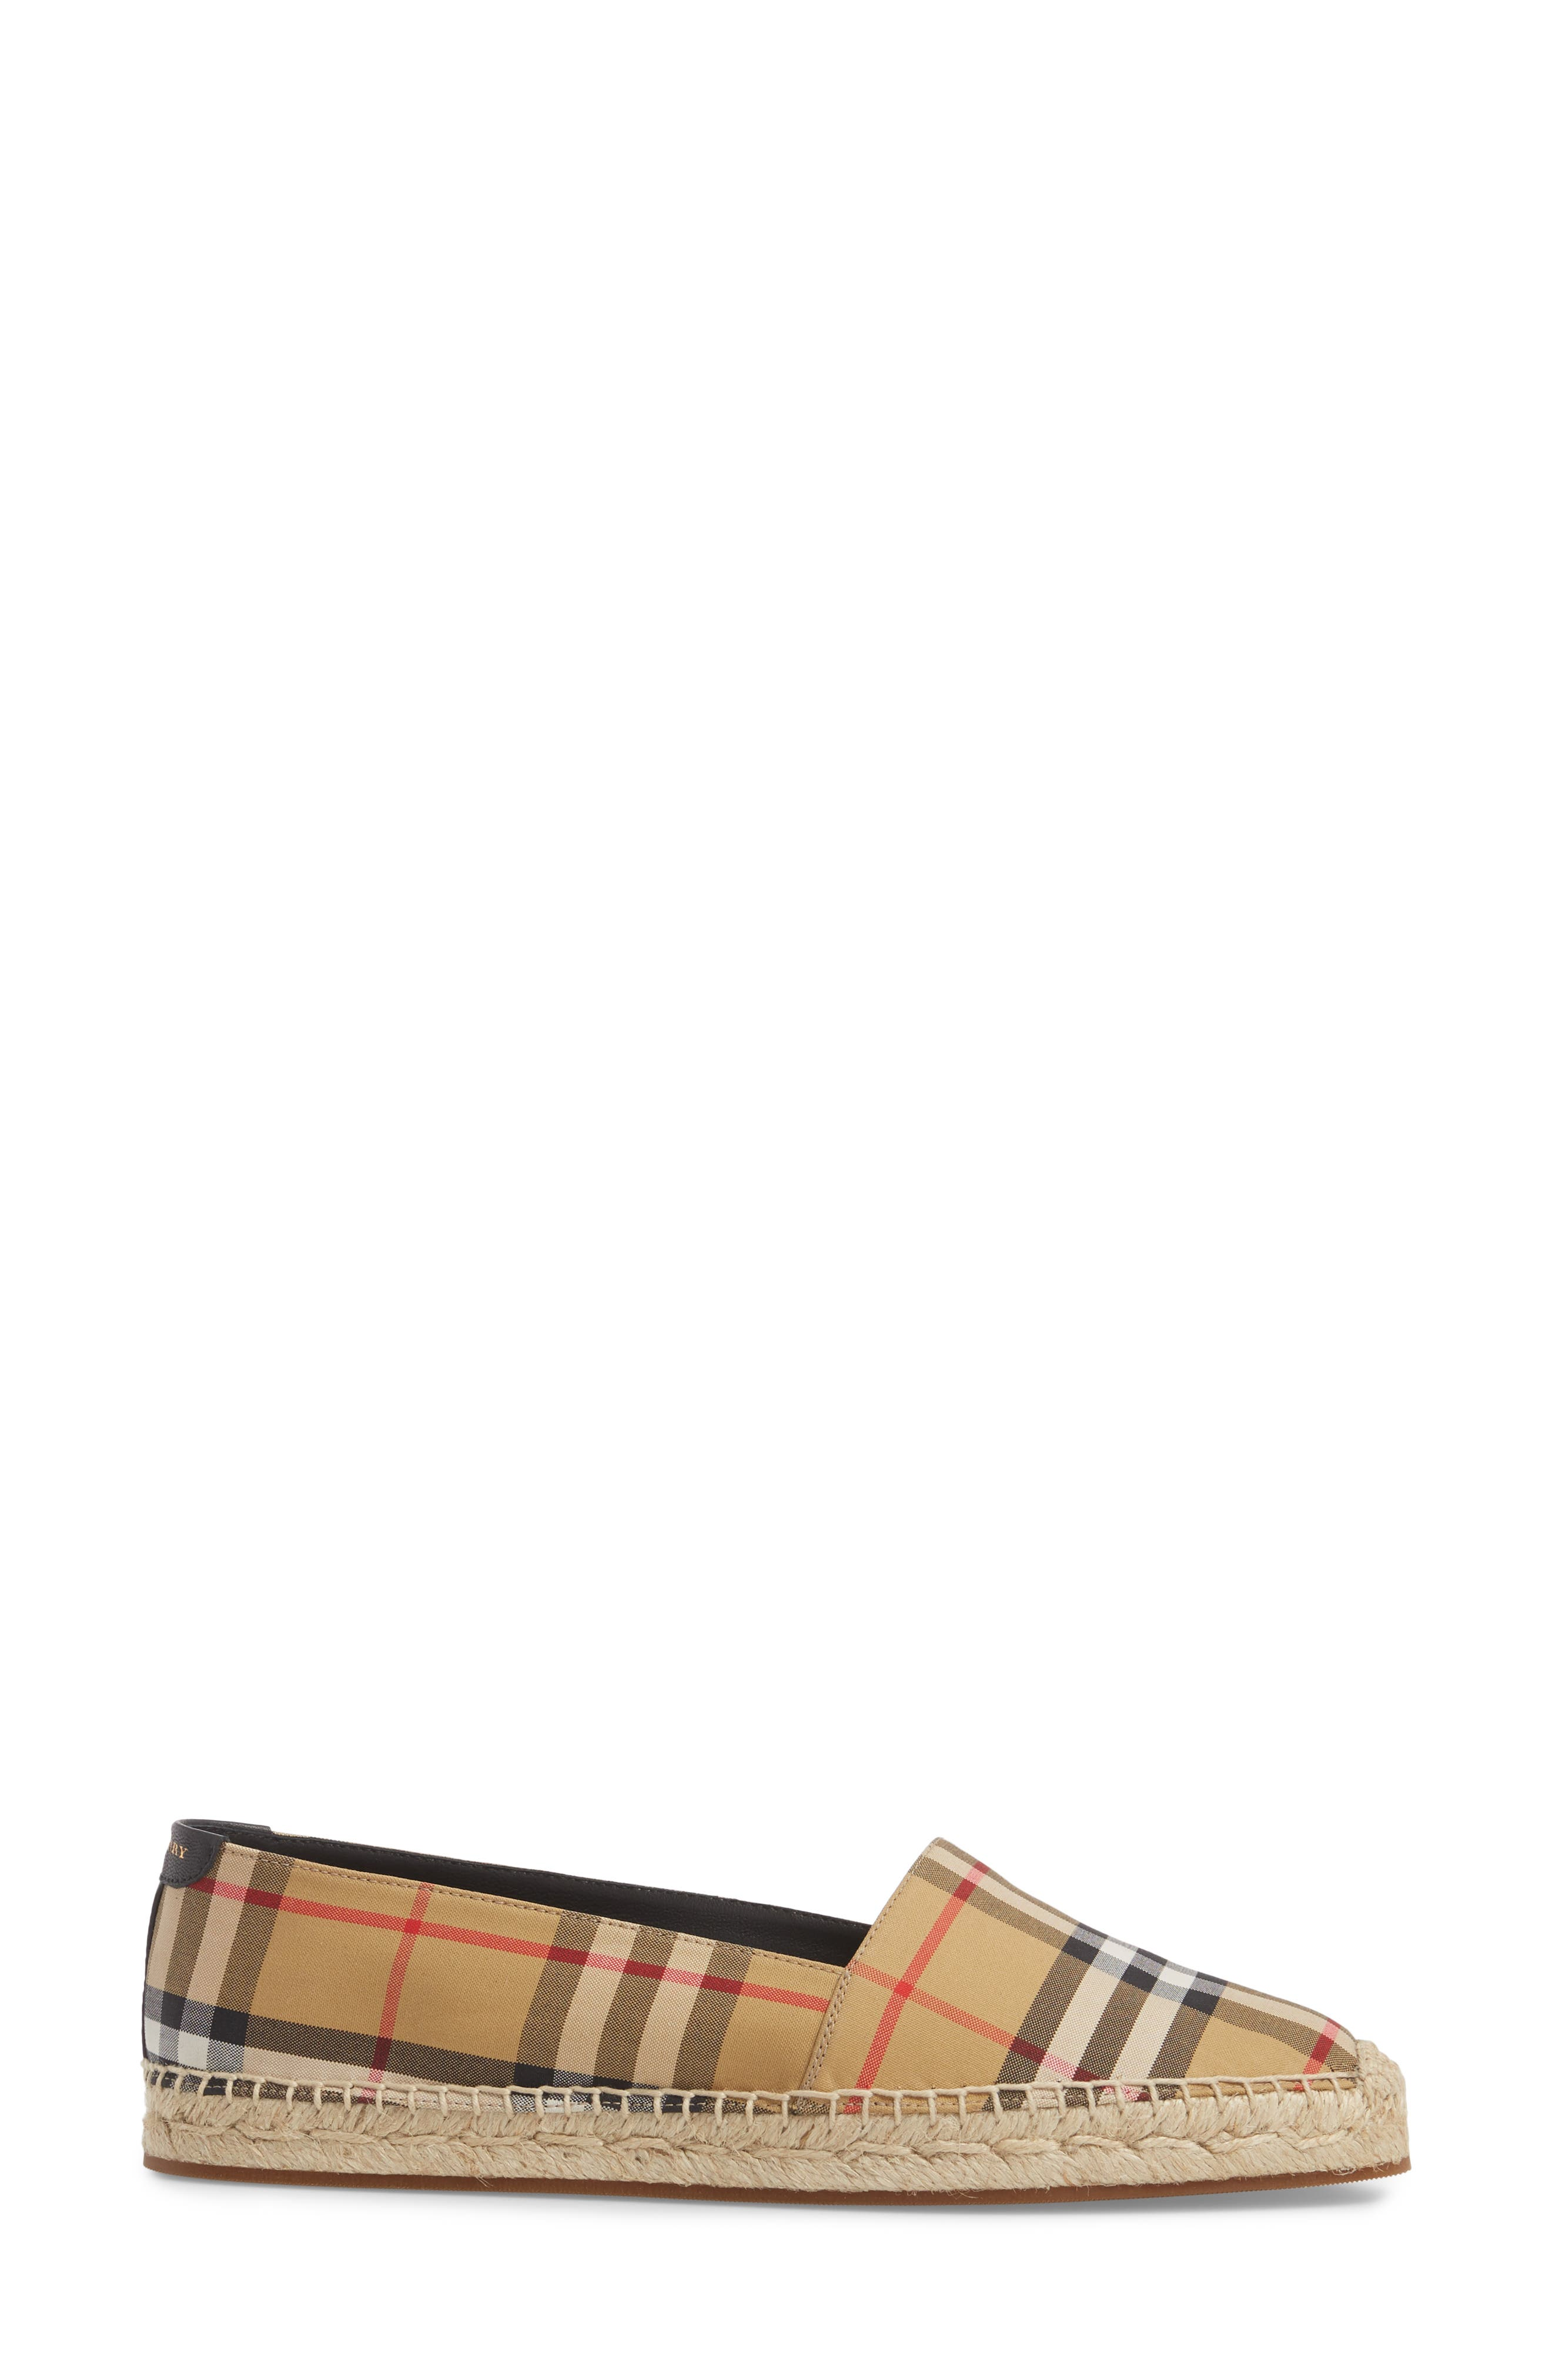 Hodgeson Check Espadrille Flat,                             Alternate thumbnail 3, color,                             251